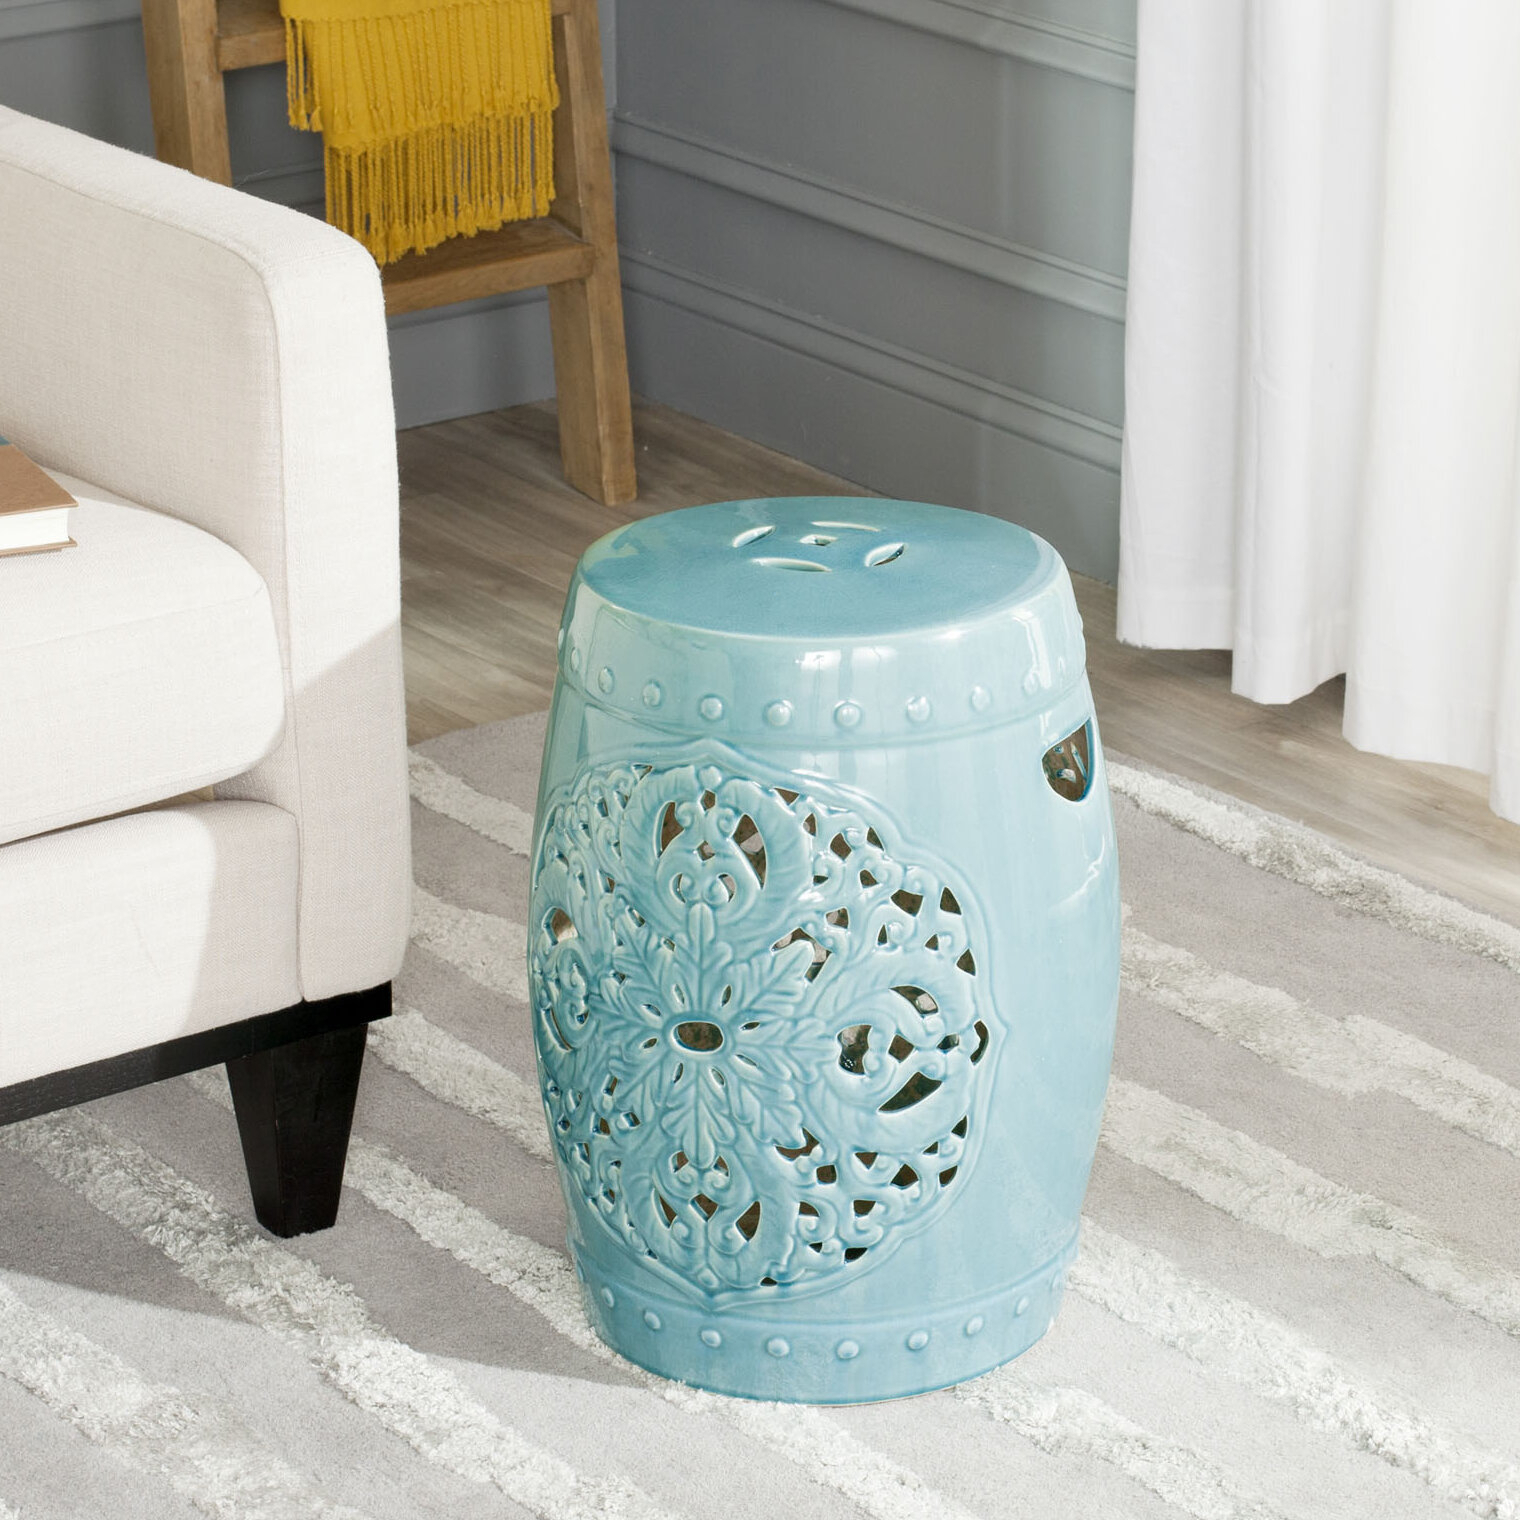 Nagle Ceramic Garden Stool Throughout Keswick Ceramic Garden Stools (View 23 of 25)